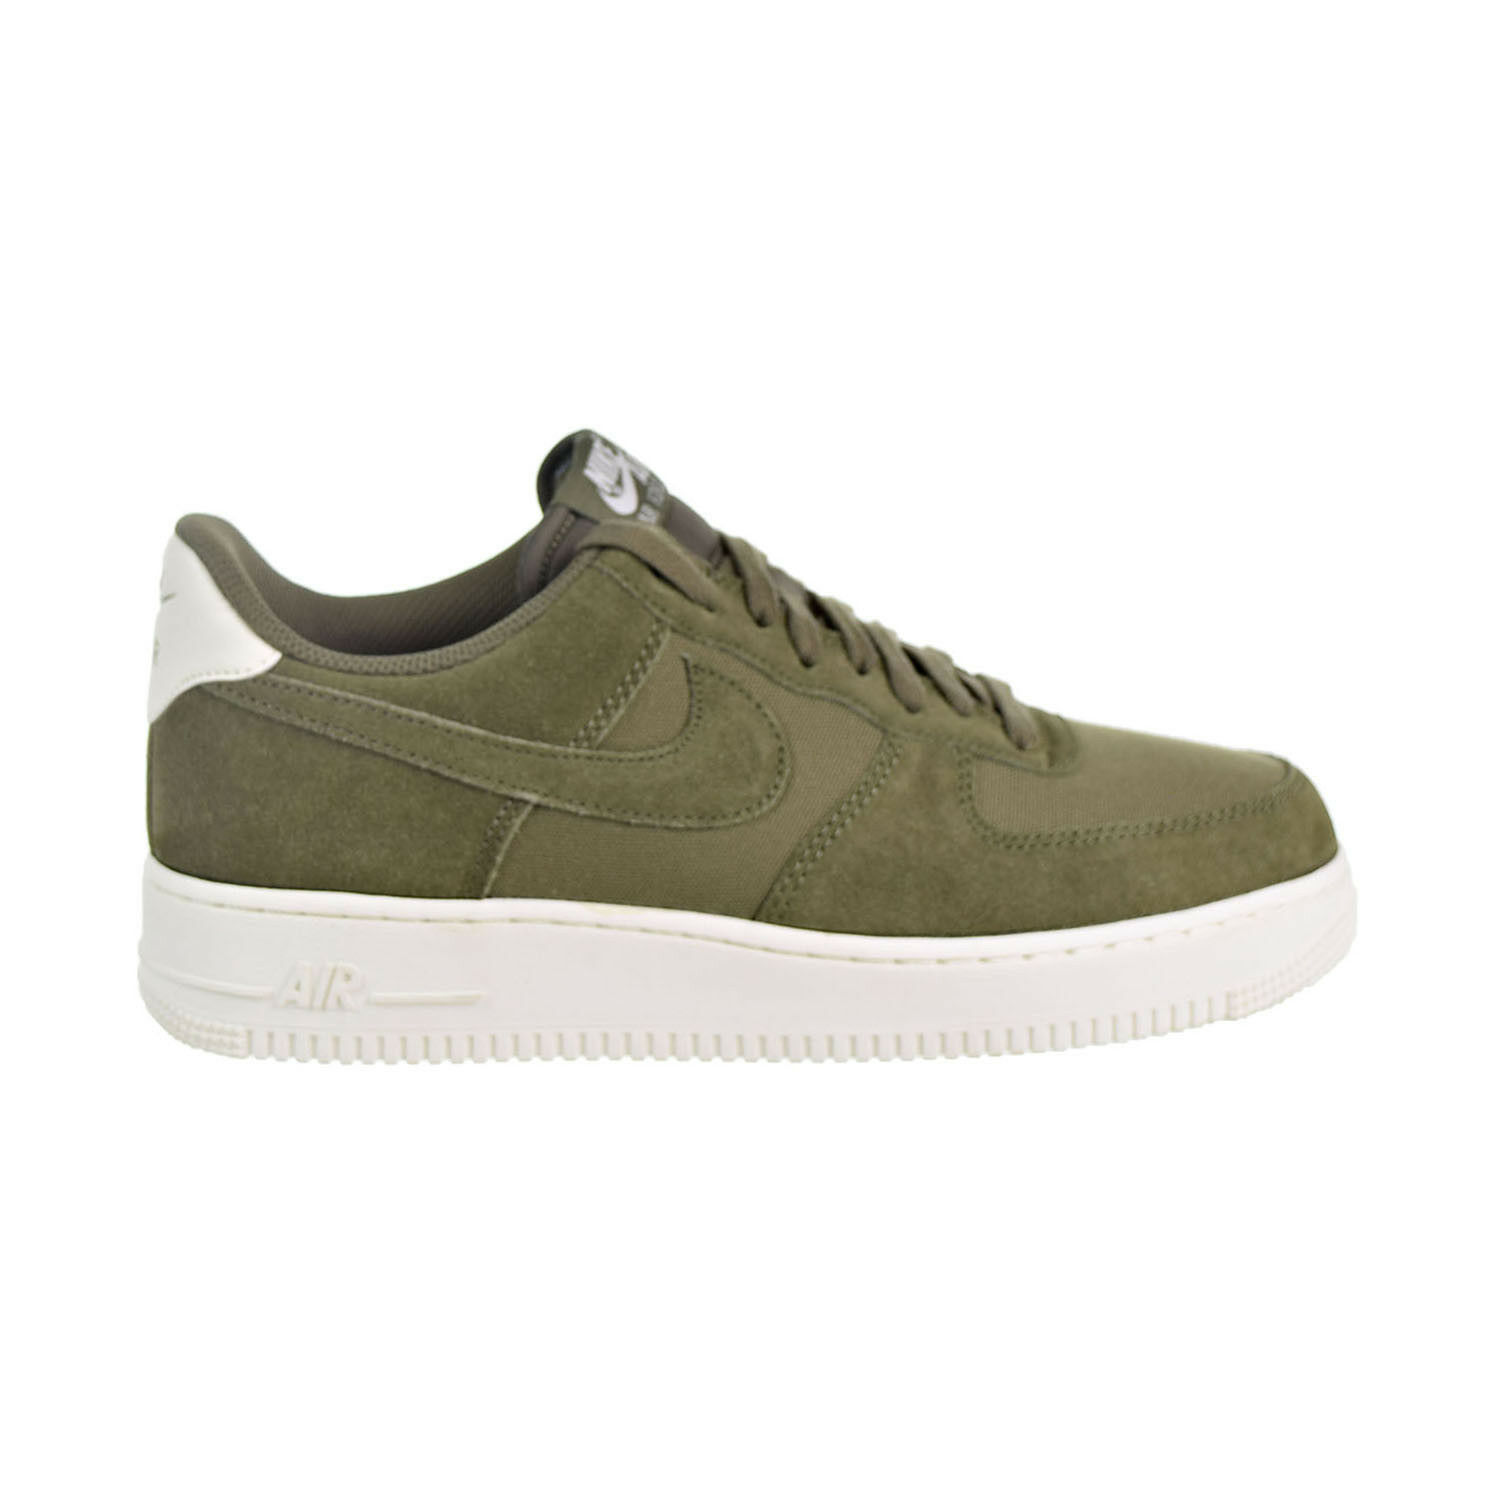 Nike Air Force 1 '07 Suede Men's shoes Medium Olive Sail AO3835-200